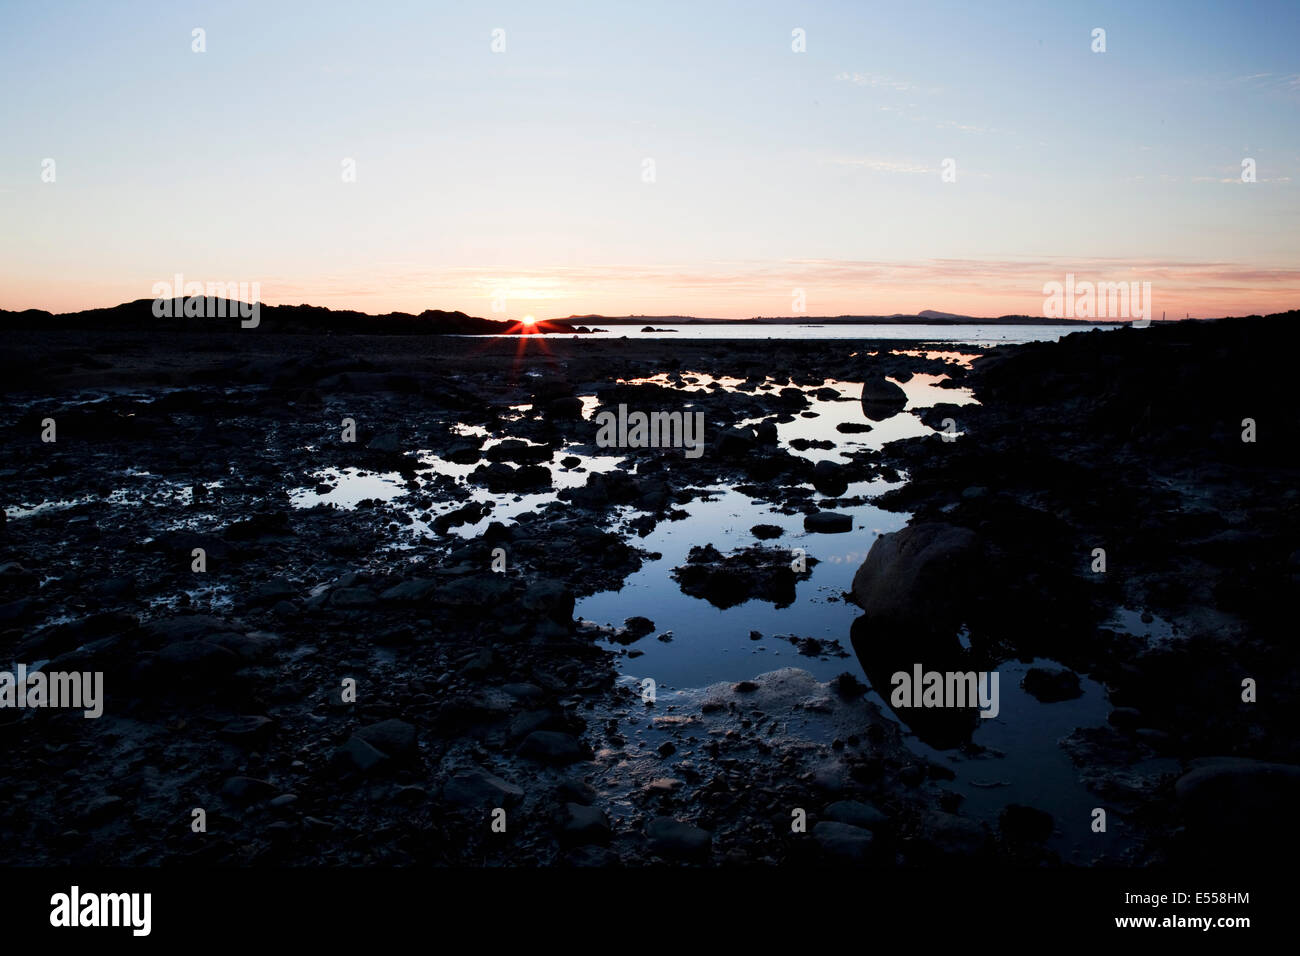 sun setting over rockpools, Boating Beach, Rhosneigr, Anglesey, North Wales - Stock Image